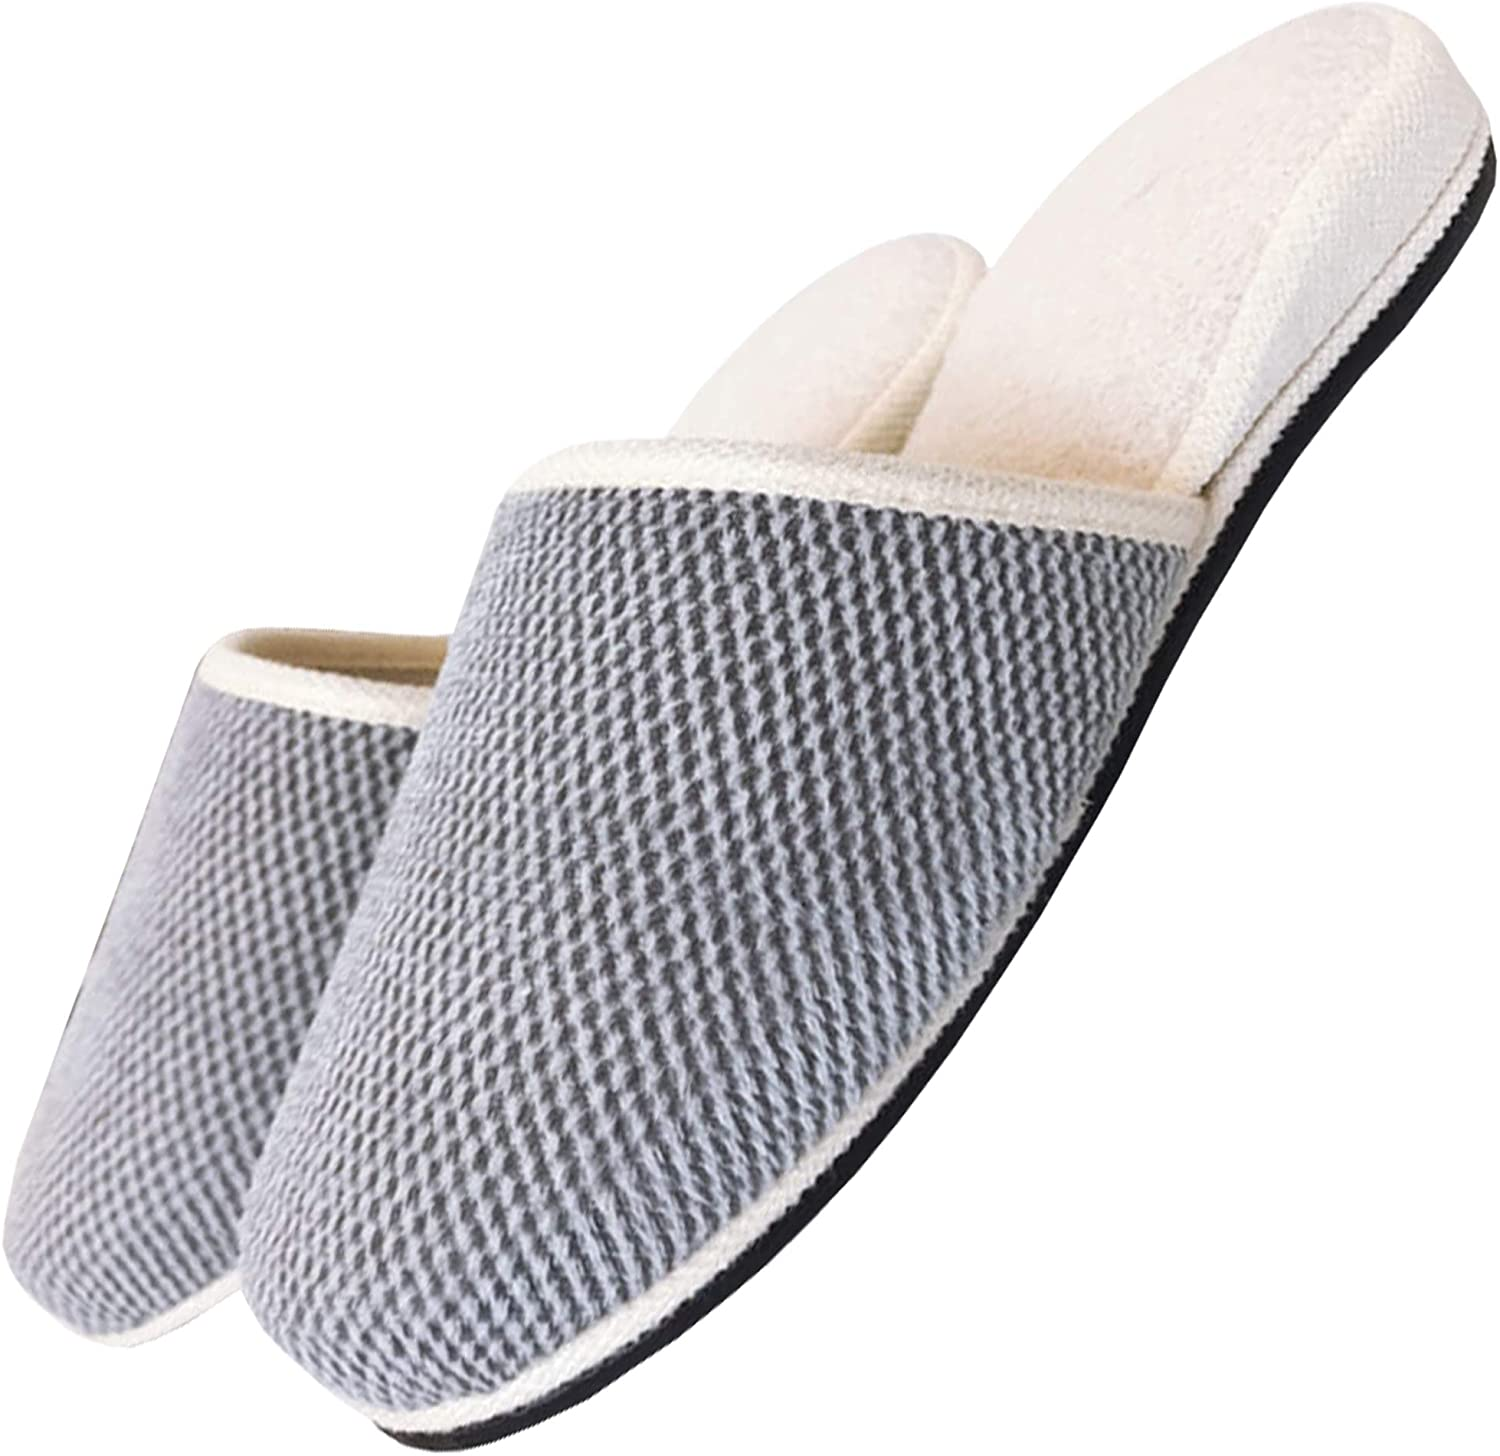 Noble Heel Living Room Indoor Slippers for use Home & Office Color